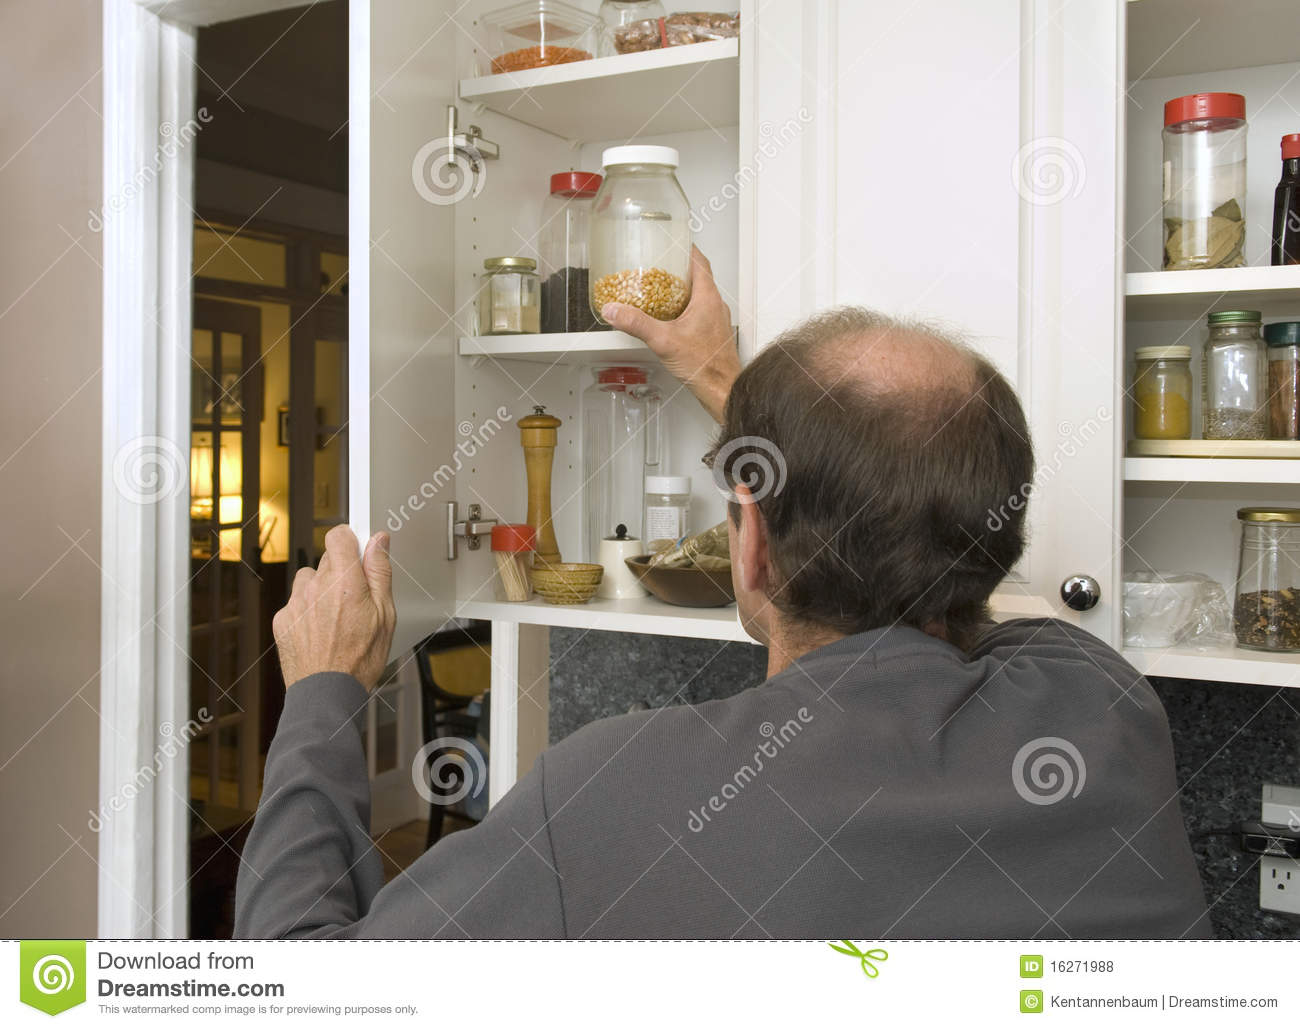 Man Reaching For Popcorn In Empty Cabinet Stock Photo